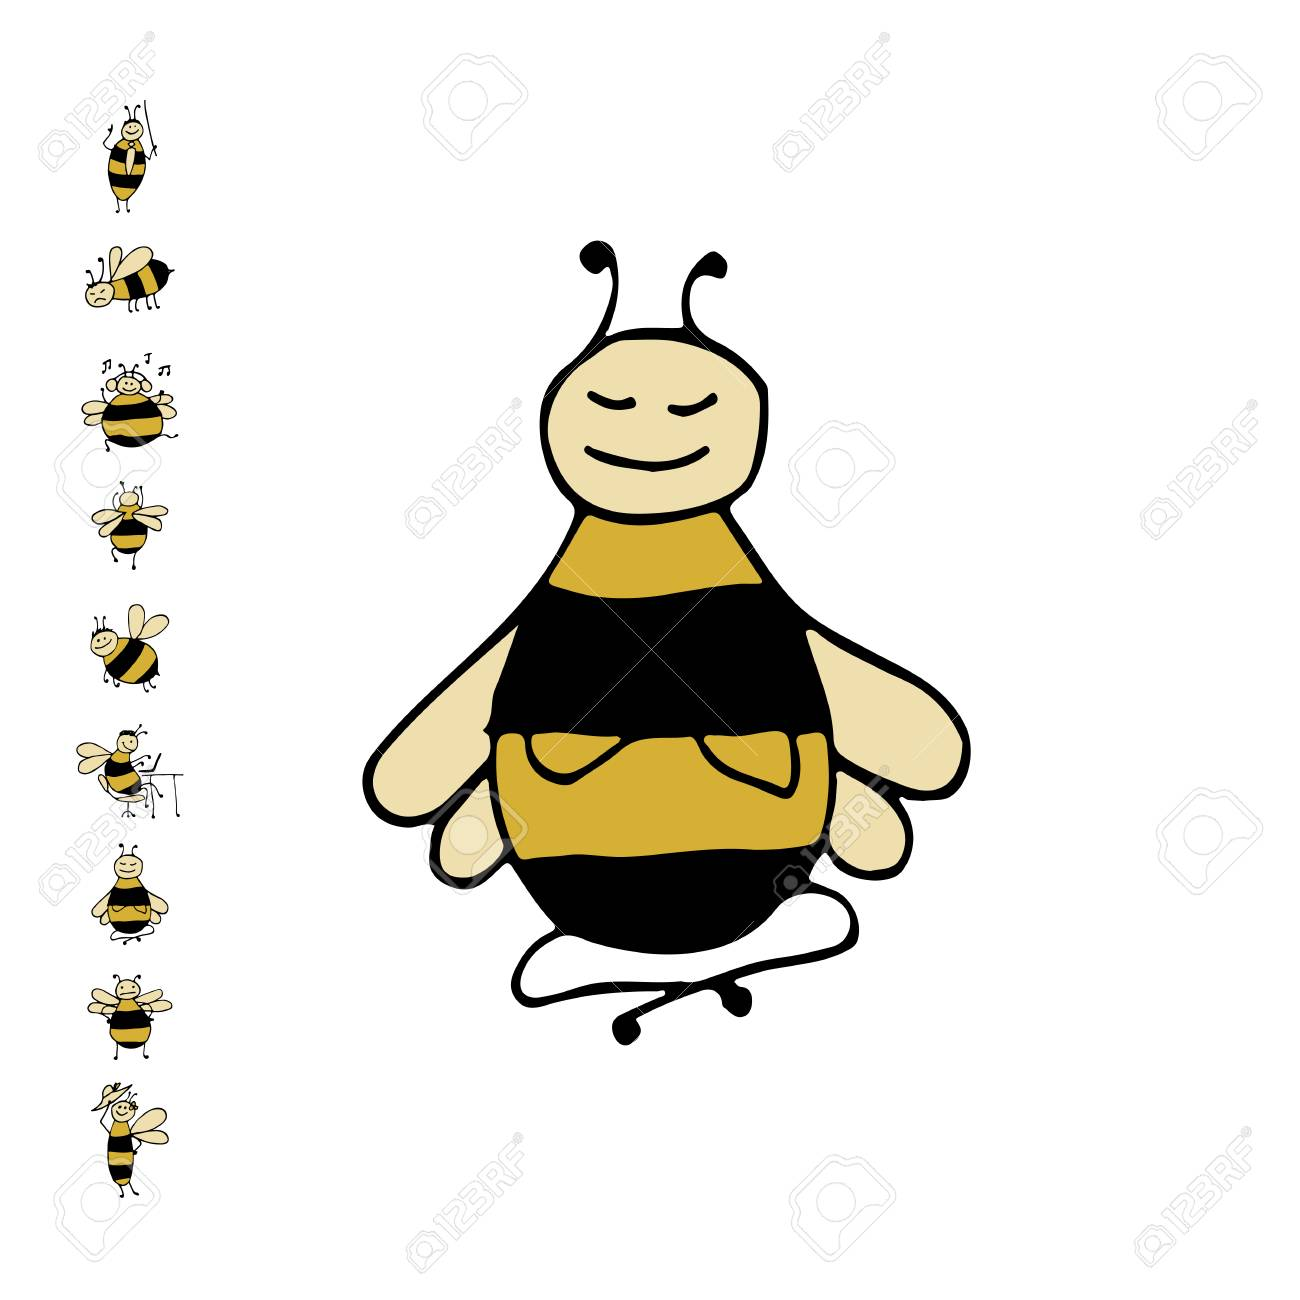 Funny Bee Yoga Sketch For Your Design Royalty Free Cliparts